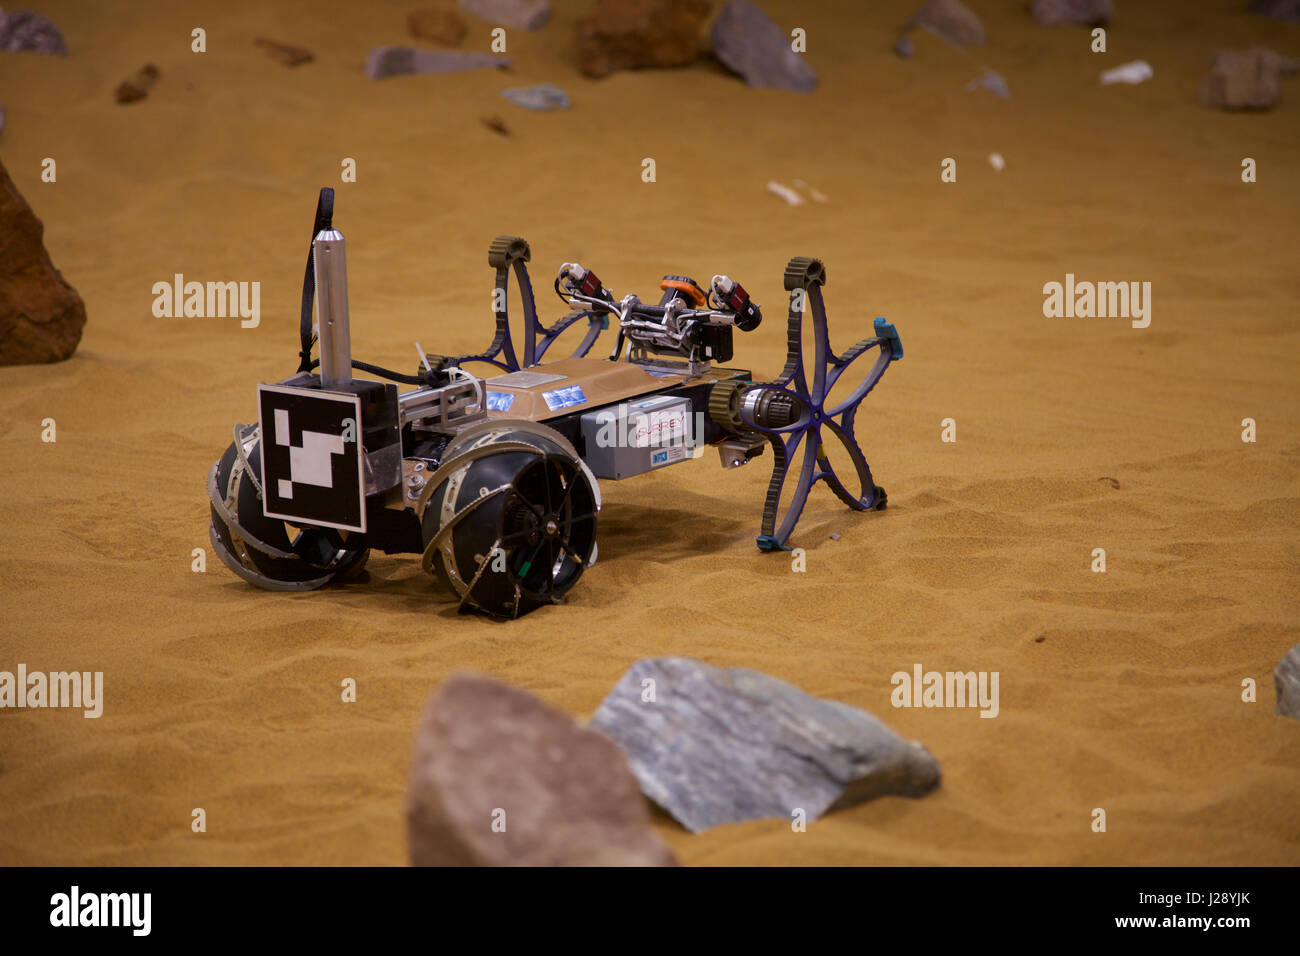 A small scout prototypes for the ESA ExoMars rover mission to Mars is tested by Airbus in a warehouse made to look - Stock Image